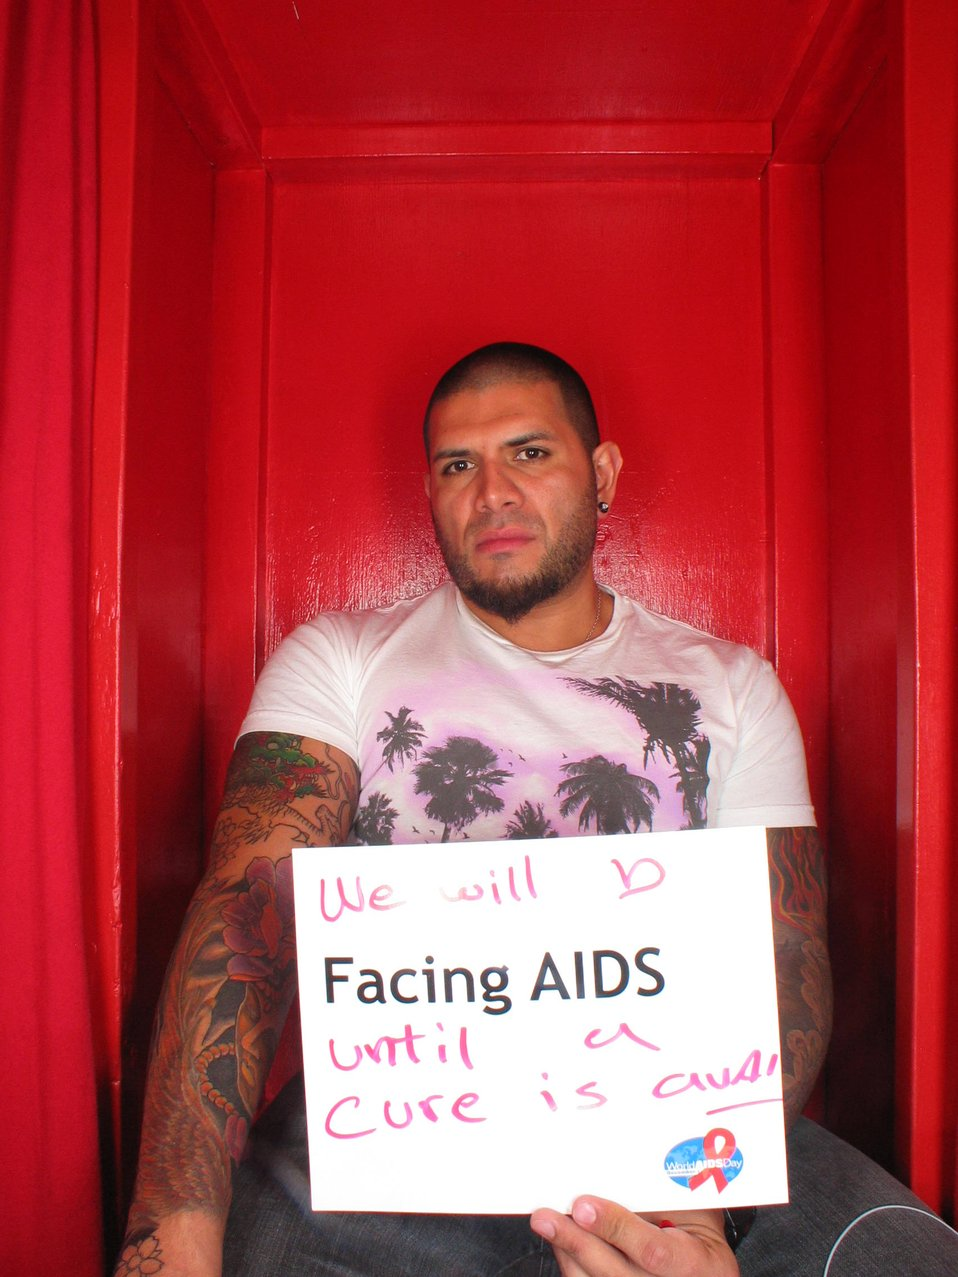 We will b Facing AIDS until a cure is found.